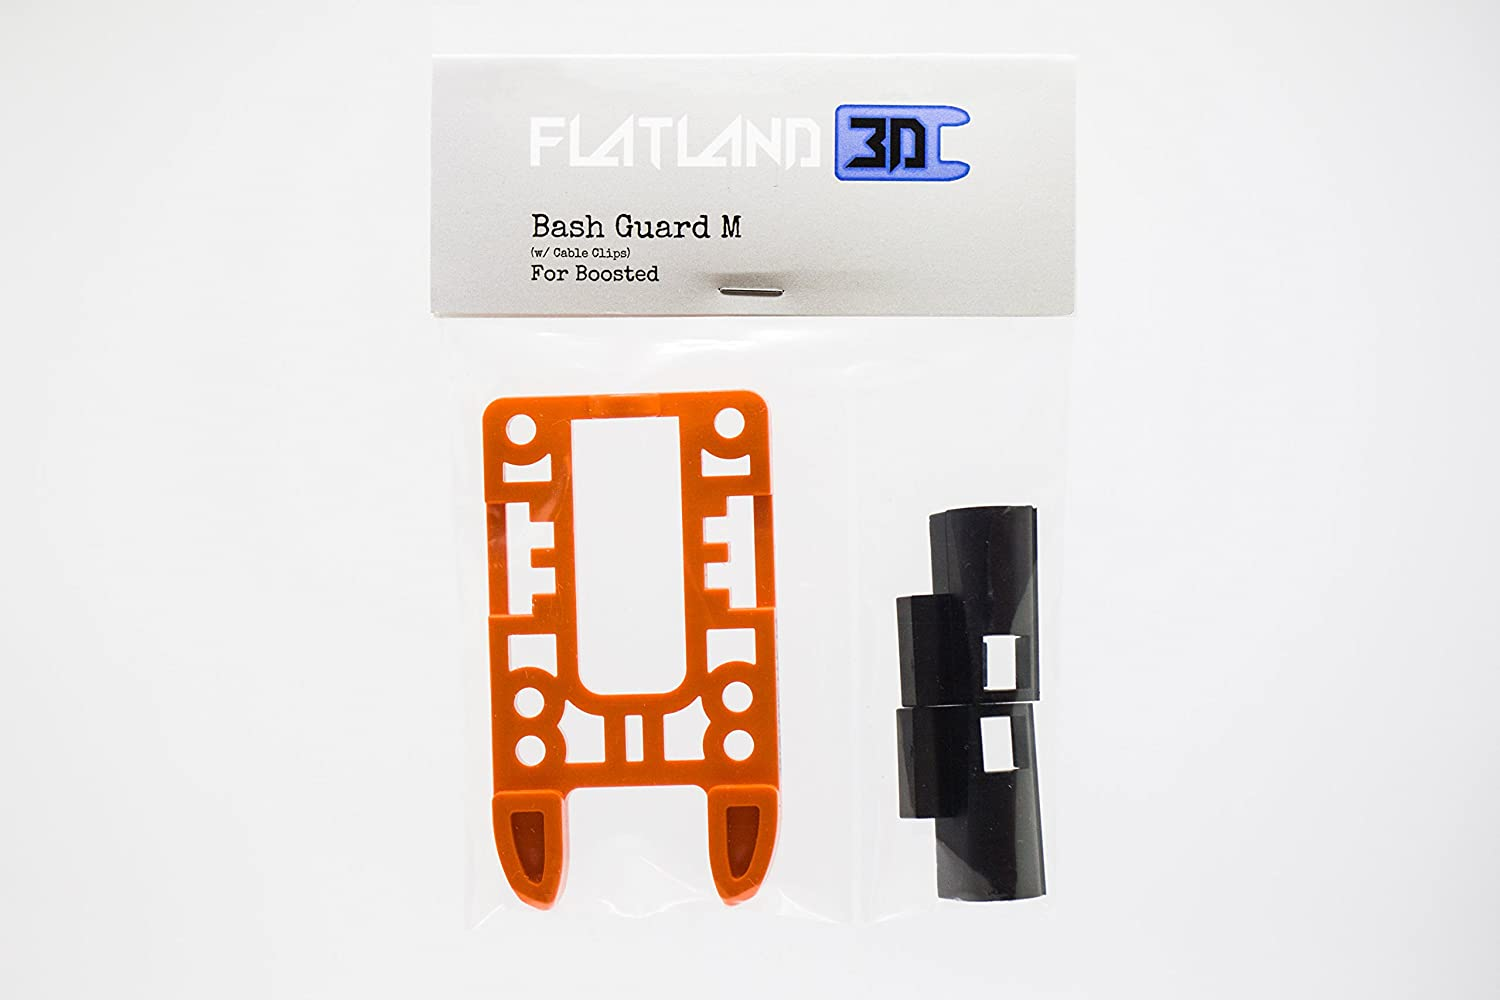 flatland3d Bash Guard M - Pronger (w/Cable Clips) - for Boosted Boards